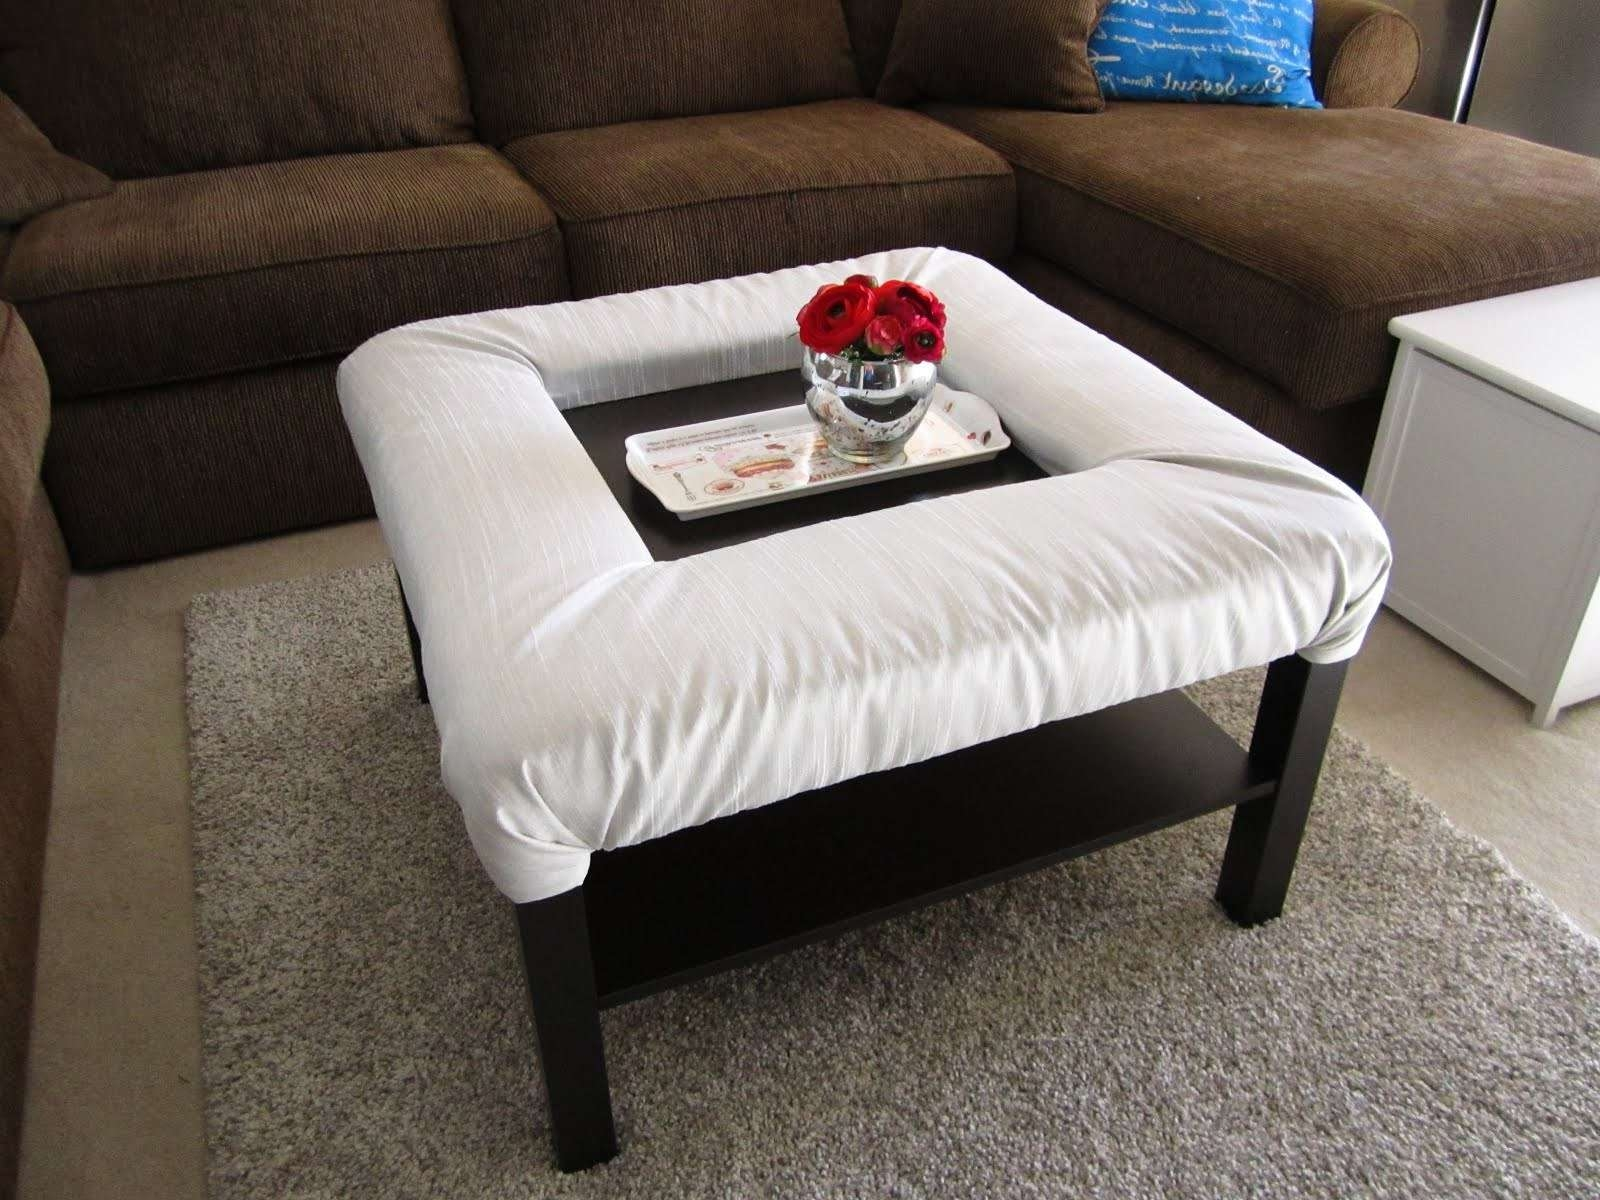 Lack Coffee Table With Footrest – Ikea Hackers In Preferred Coffee Table Footrests (View 2 of 20)